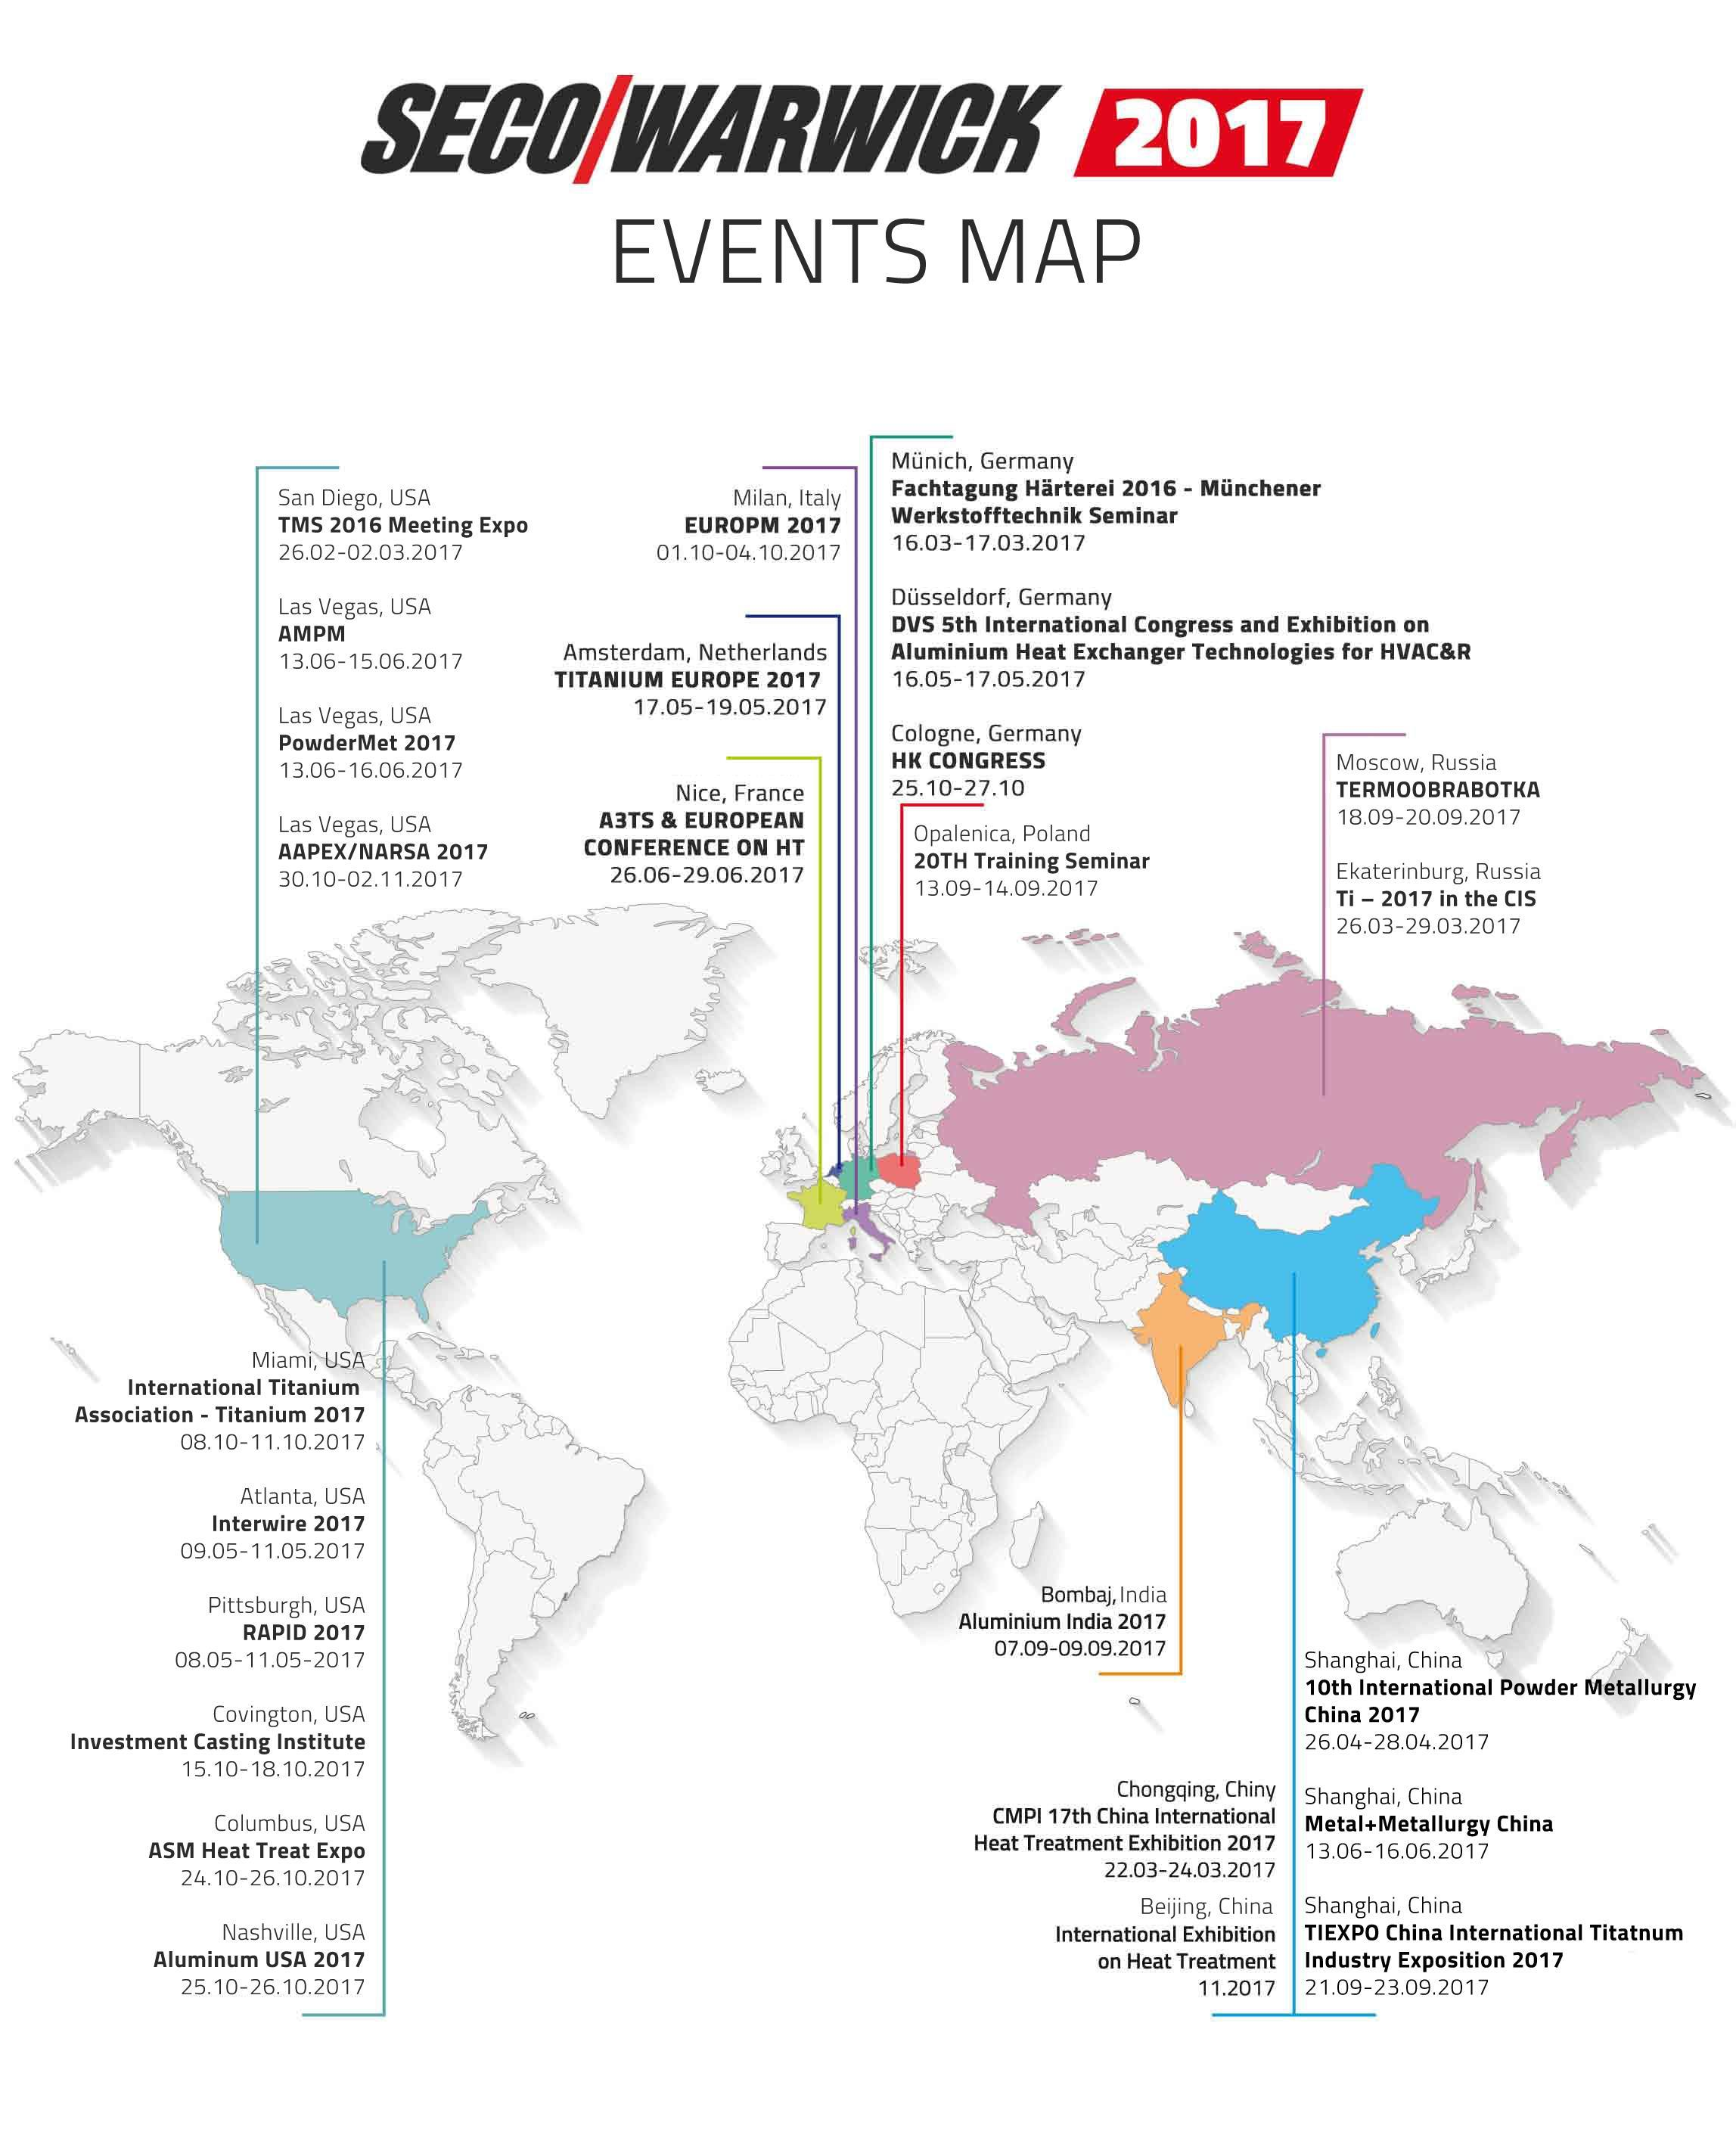 2017 map of Seco/Warwick events